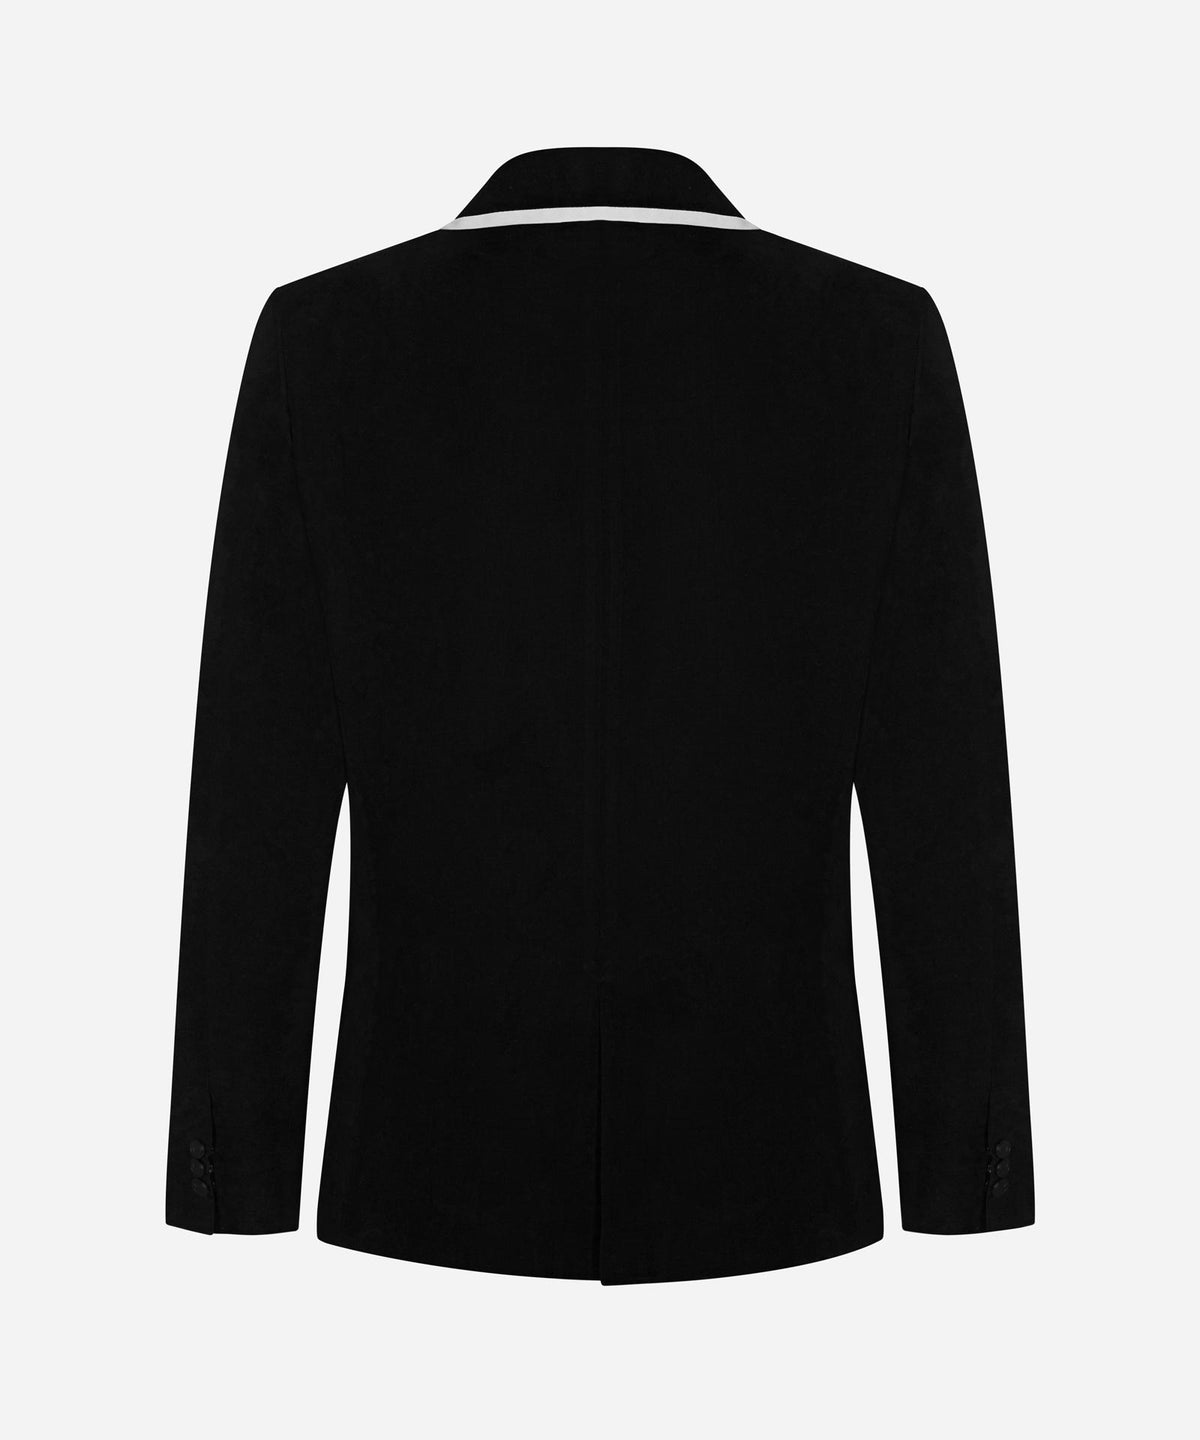 The Beach Blazer - Black/ White Trim